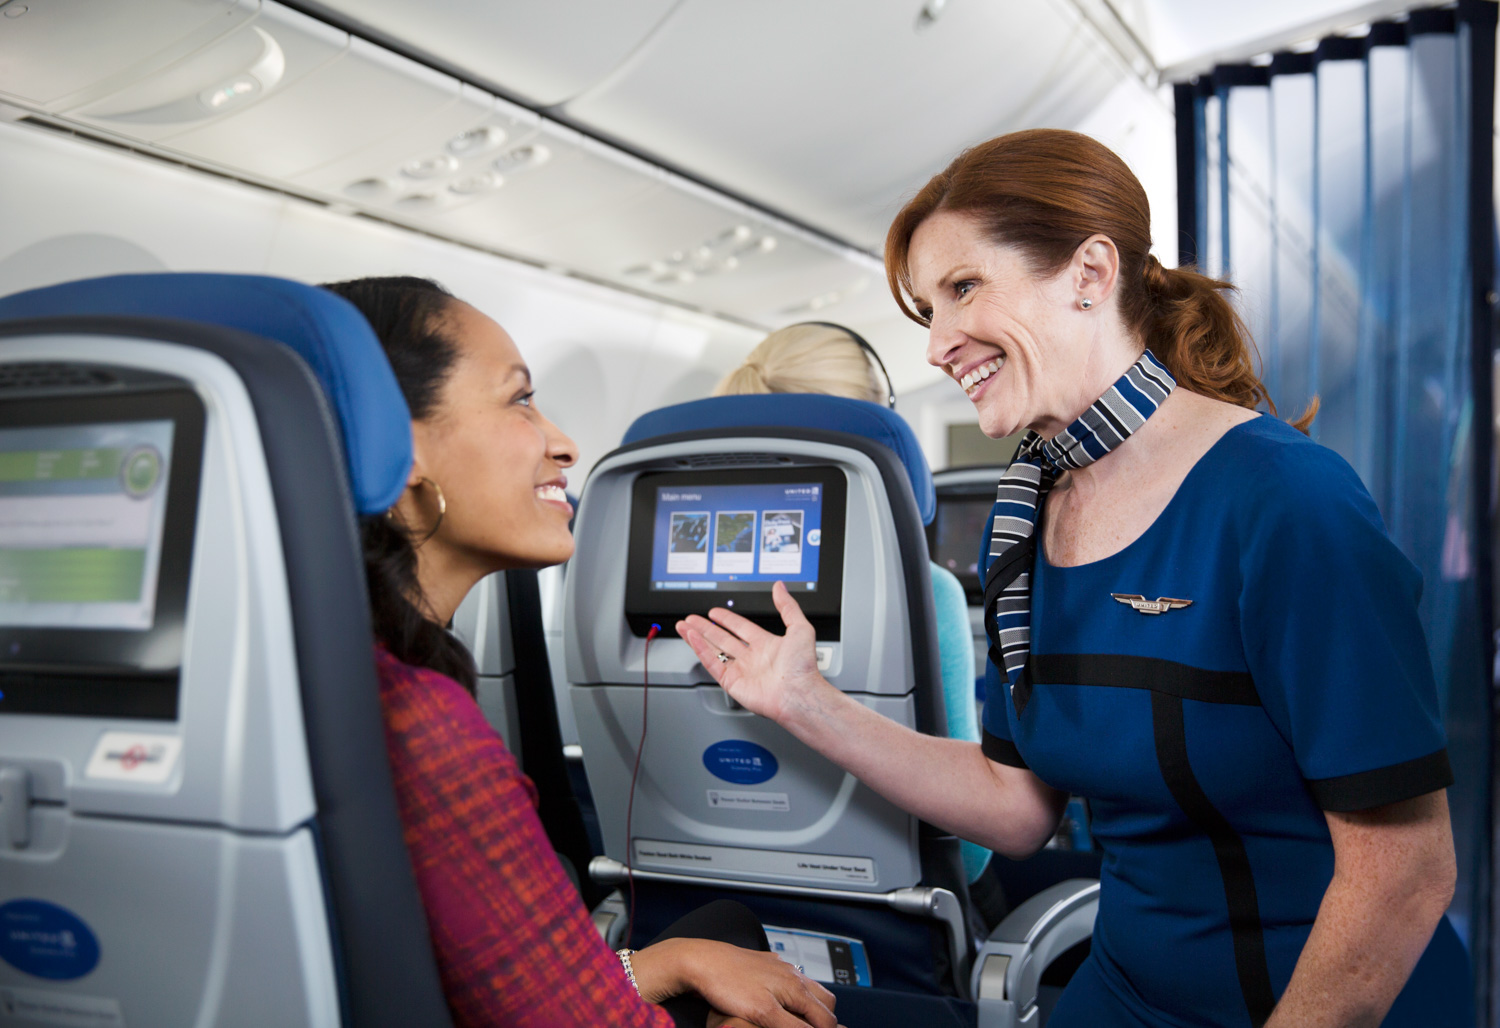 News Roundup – 22nd March 2017. A Summary of Airline News from the Past Week - United Airlines delays Boeing 777's because they haven't received the Polaris business class seats yet